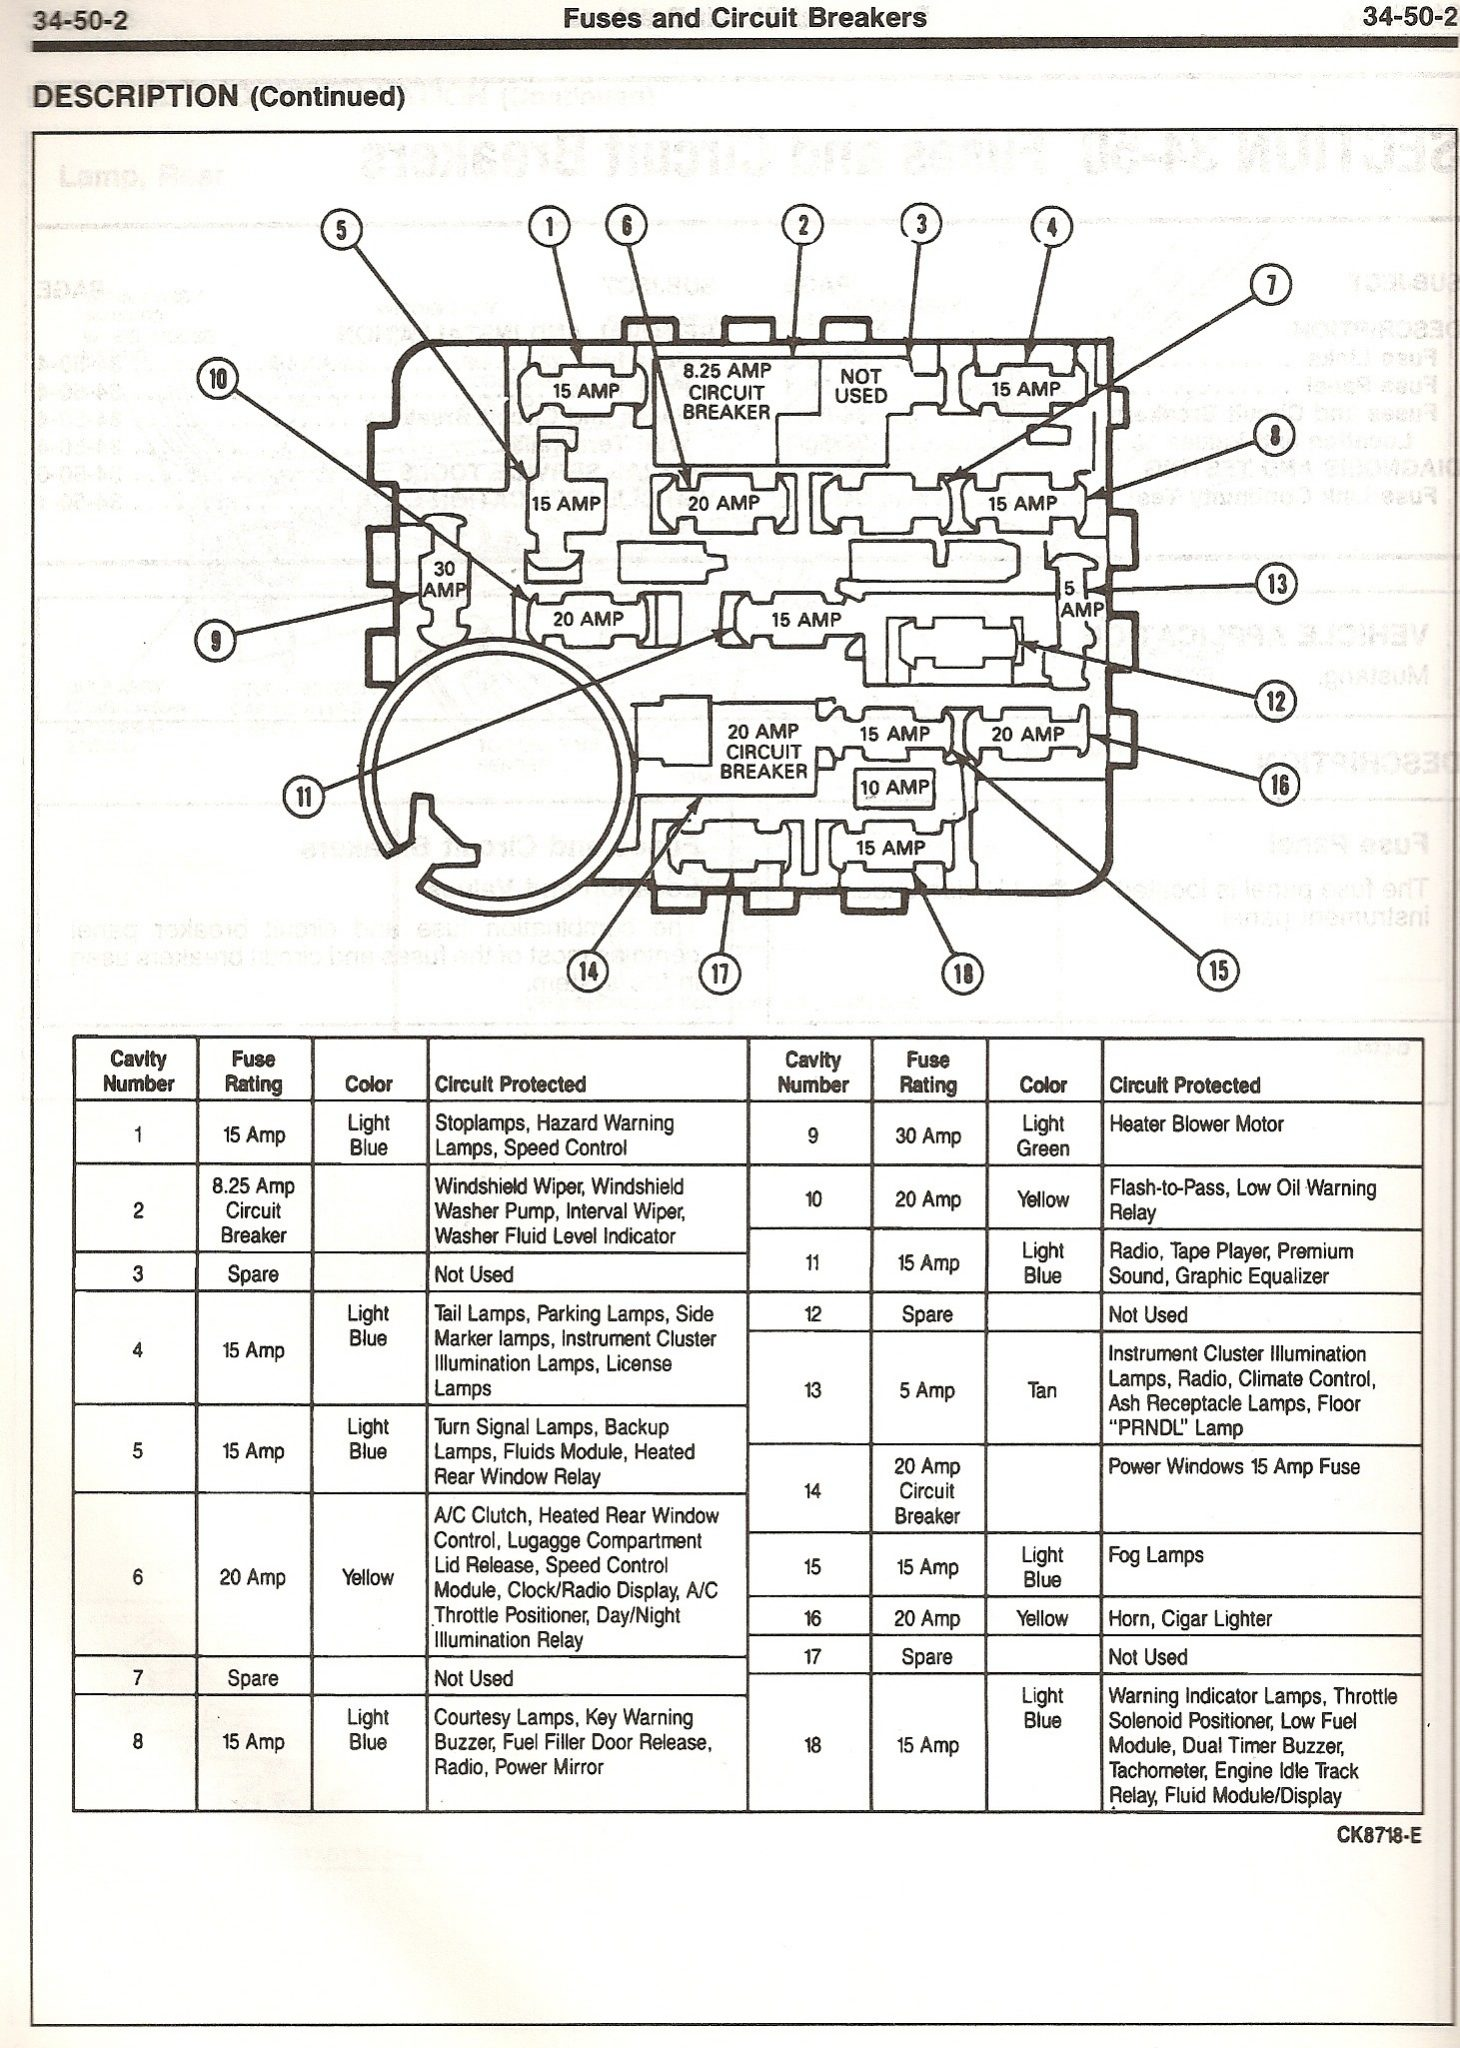 2001 Mustang Fuse Box Diagram 2001 Ford Mustang